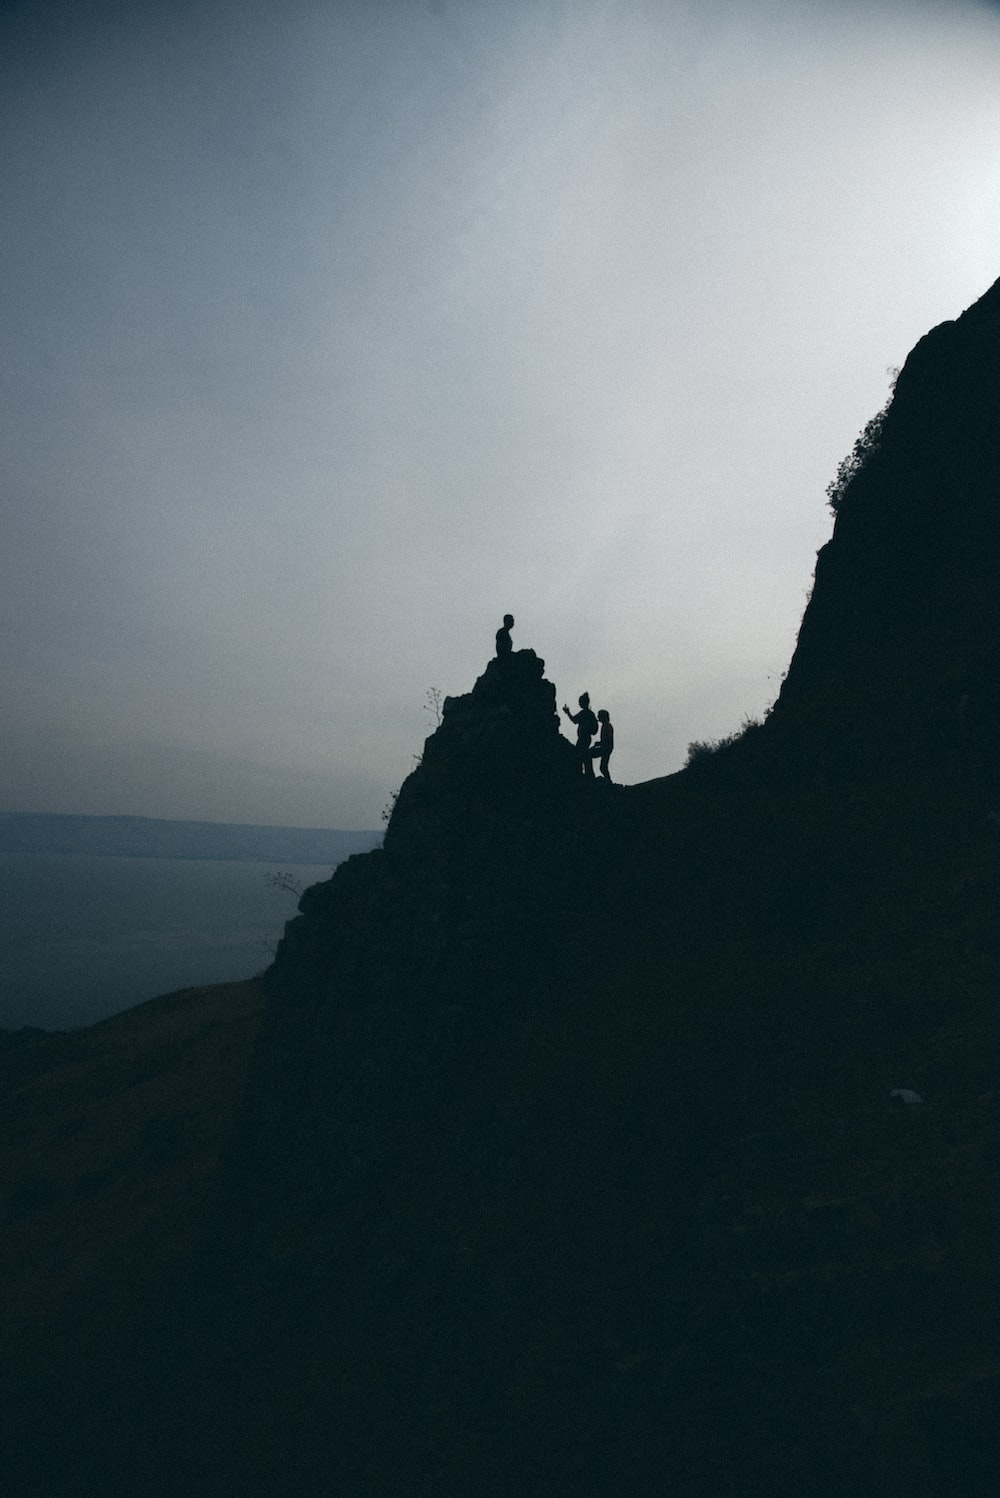 silhouette of people stand on mountain